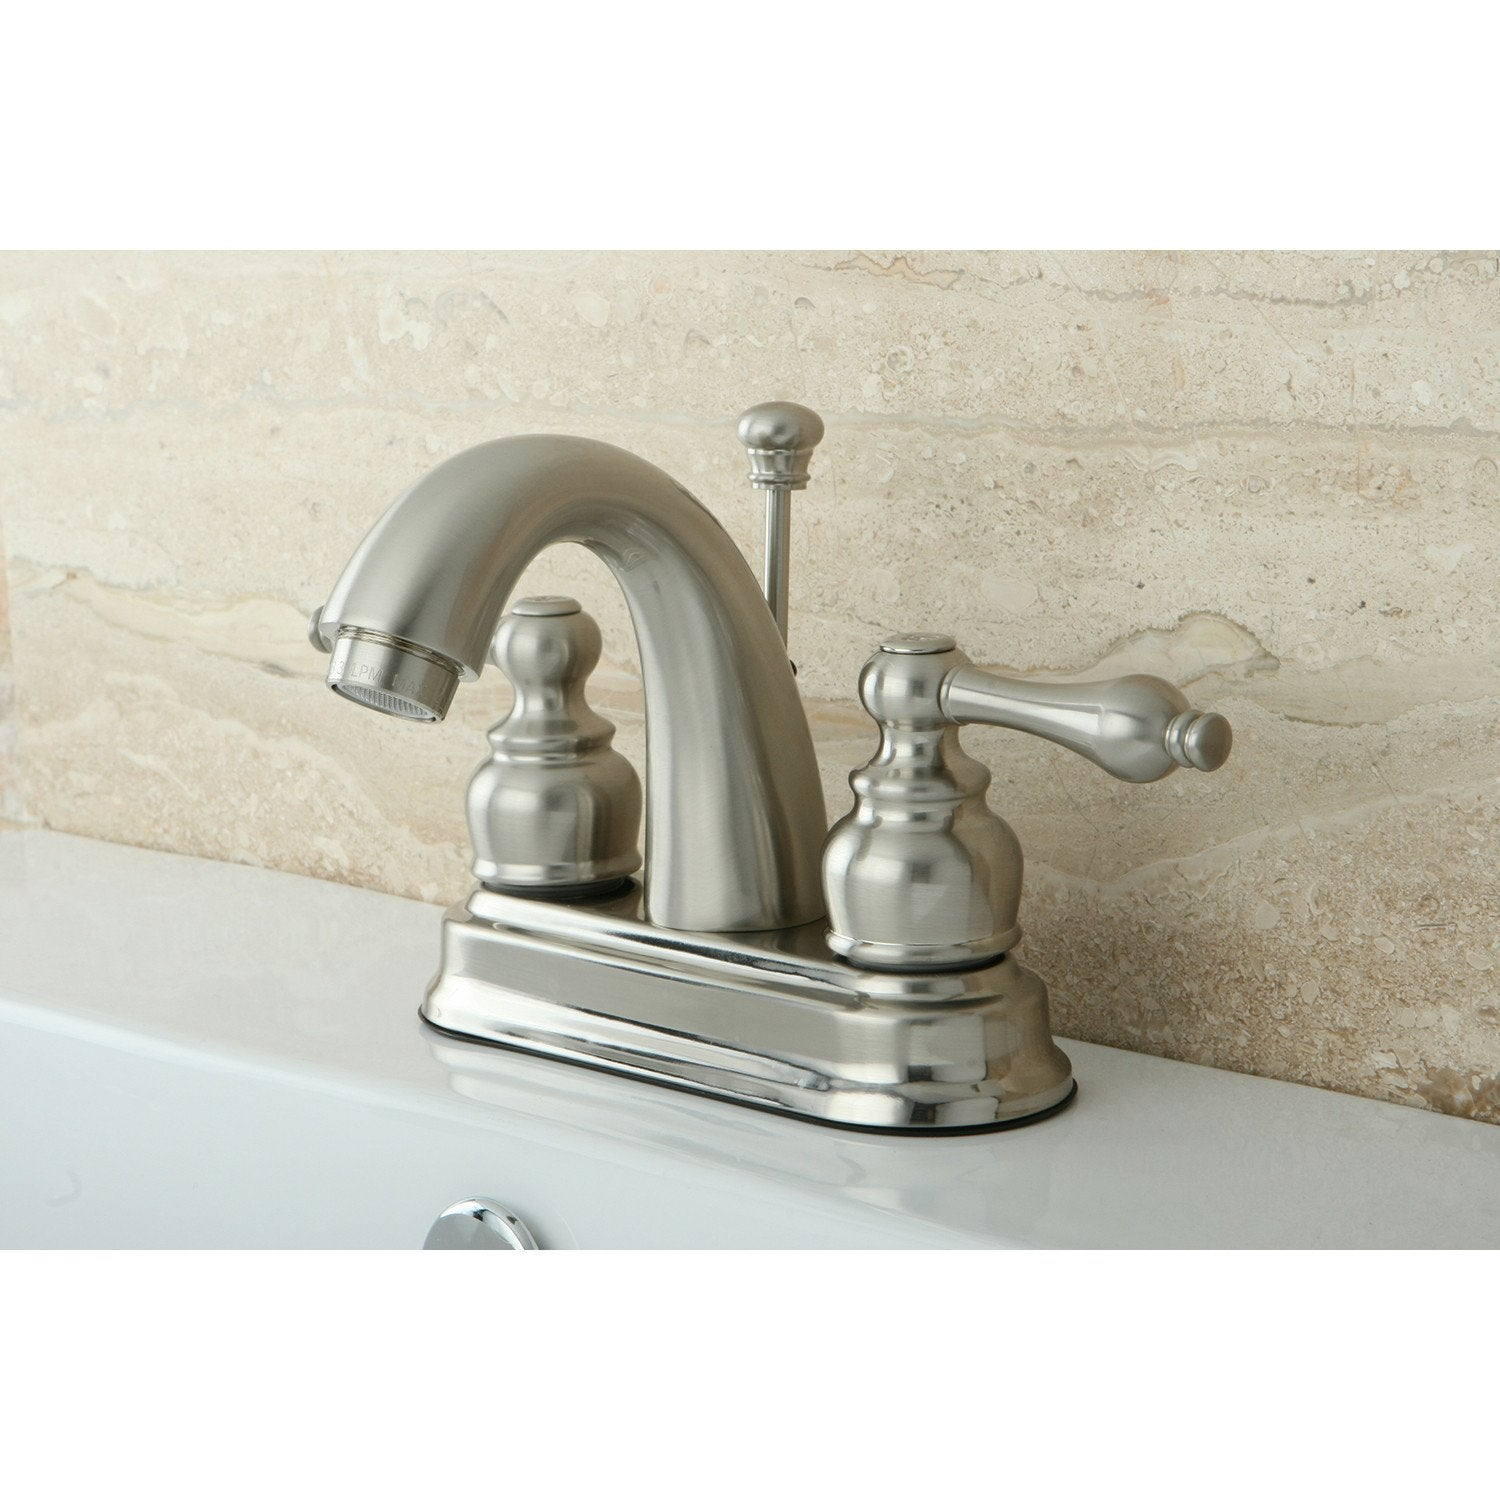 "Kingston Satin Nickel 2 Handle 4"" Centerset Bathroom Faucet with Pop-up KB5618AL"